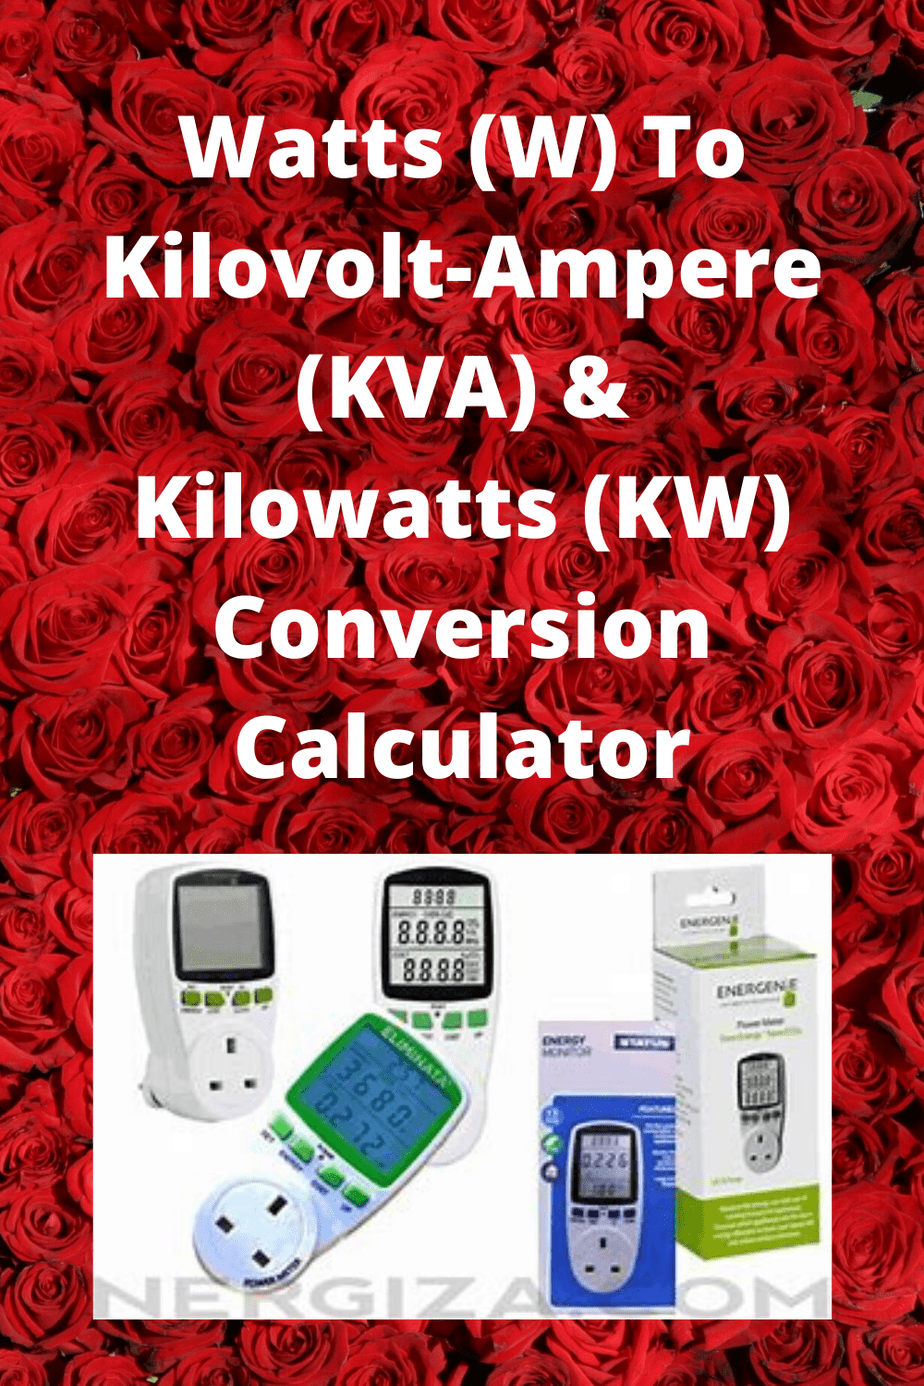 Watts (W) To Kilovolt-Ampere (KVA) & Kilowatts (KW) Conversion Calculator